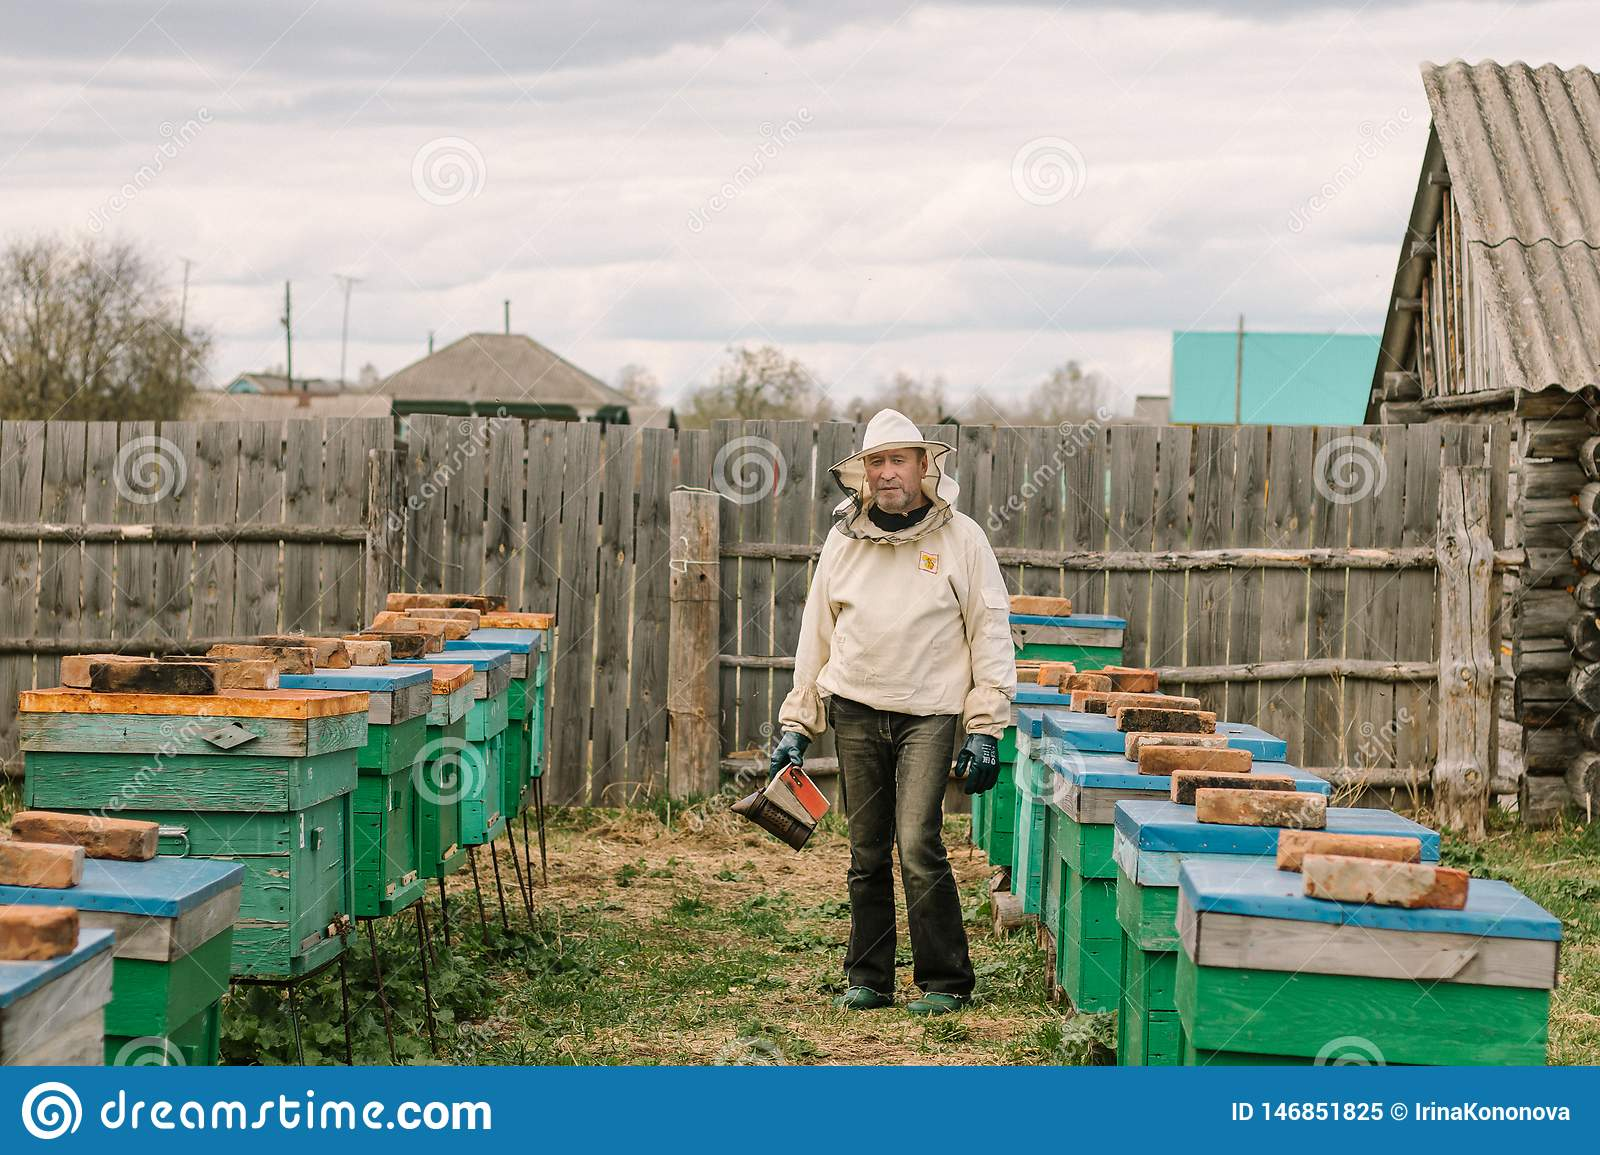 Beekeeper in a protective suit among the hives